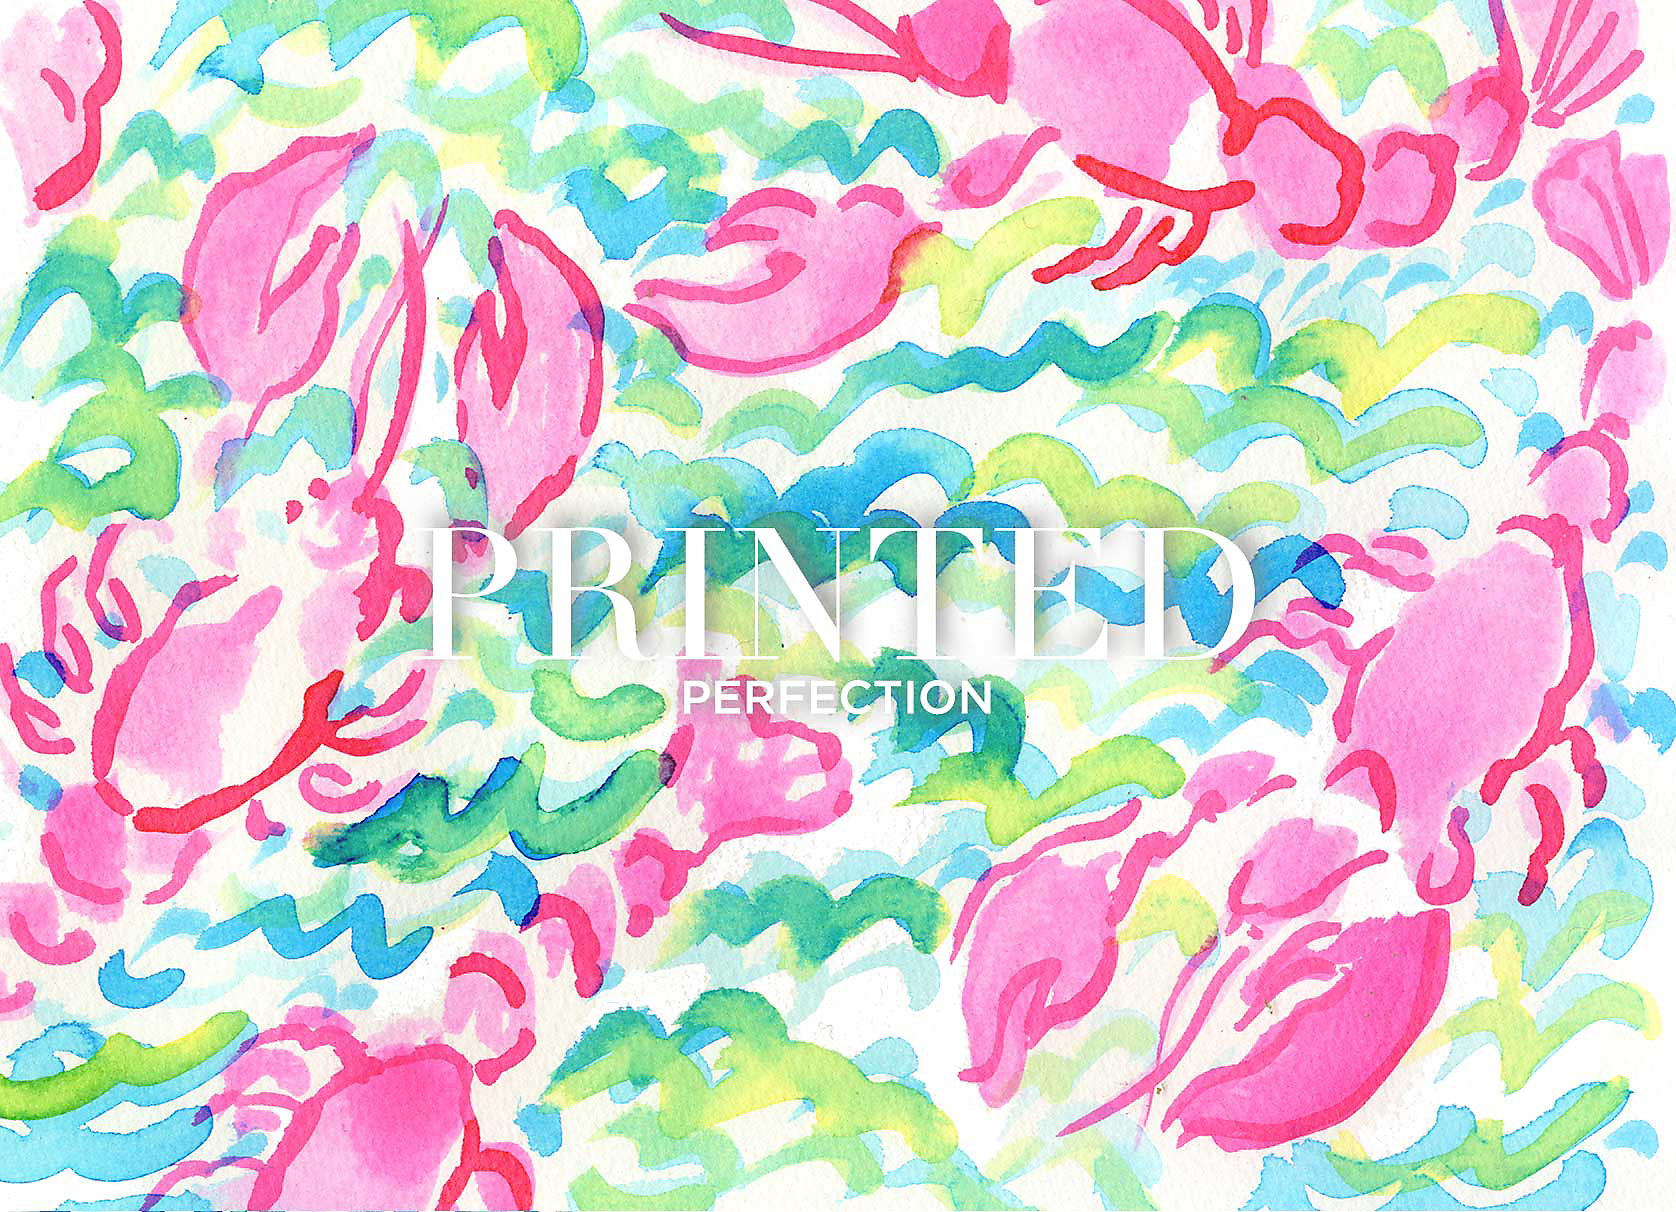 Lilly Pulitzer Patterns Lilly Prints Heritage Lilly Pulitzer